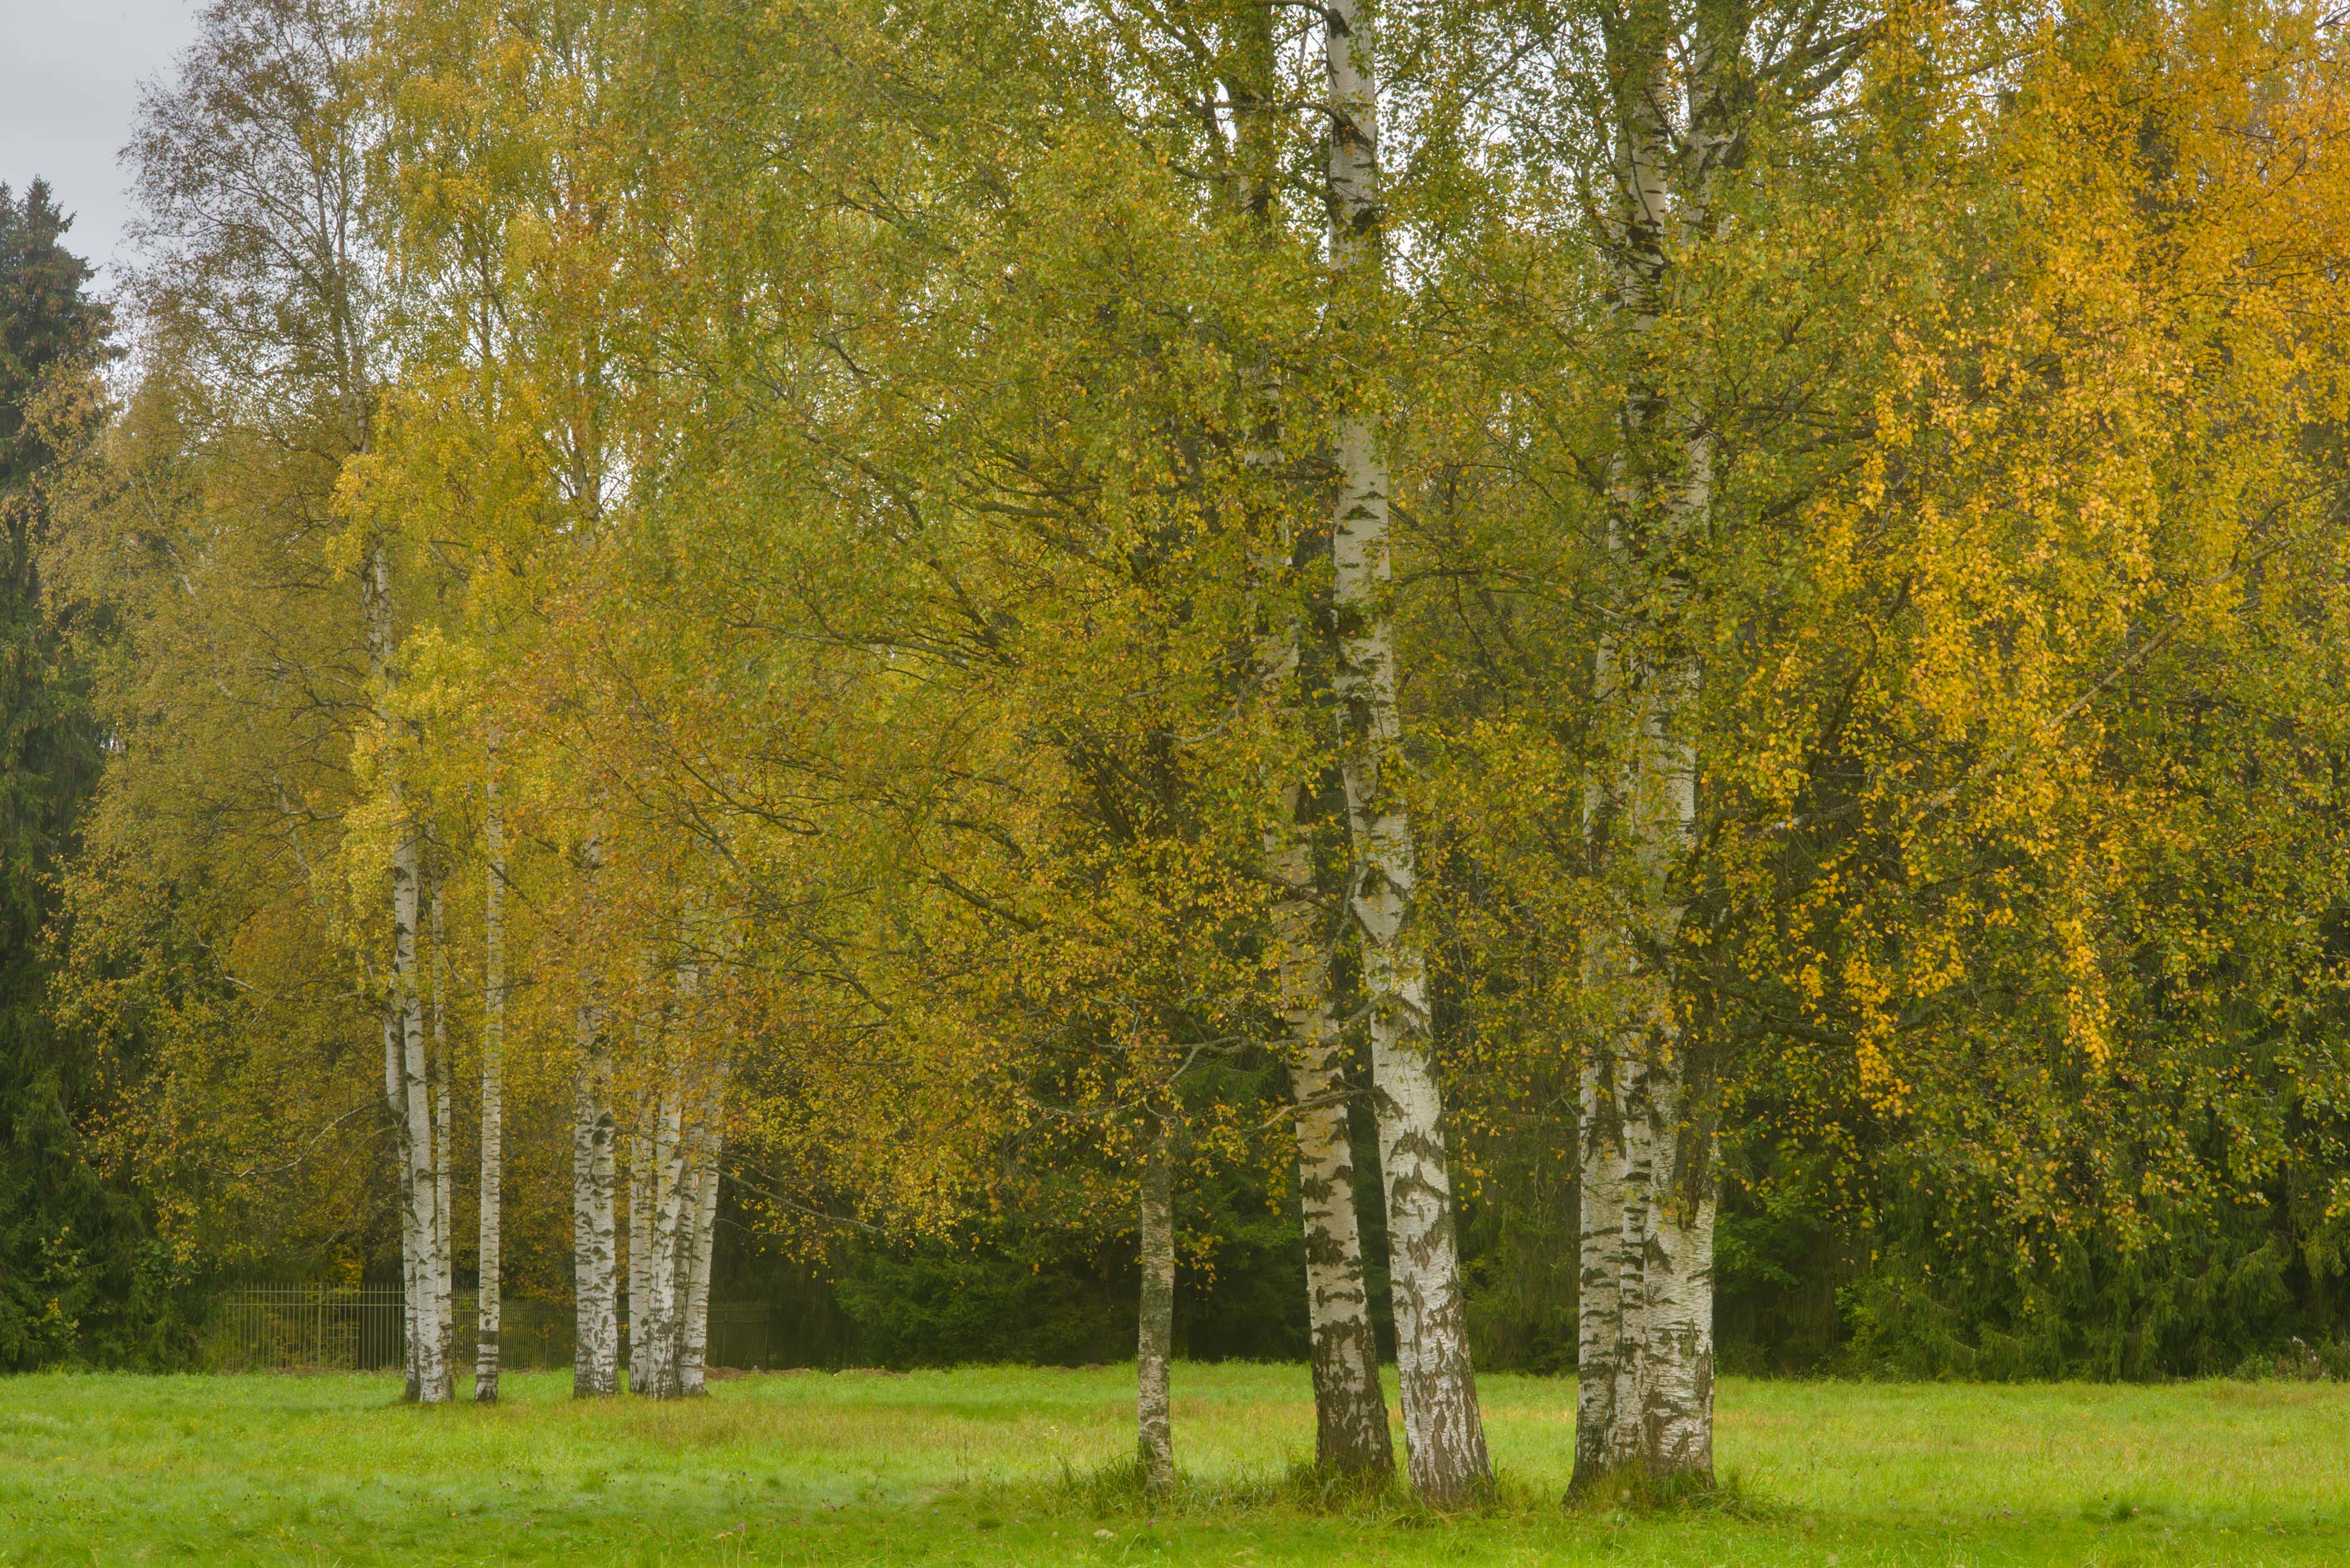 Birch groves in area of New Sylvia in Pavlovsk...a suburb of St.Petersburg, Russia